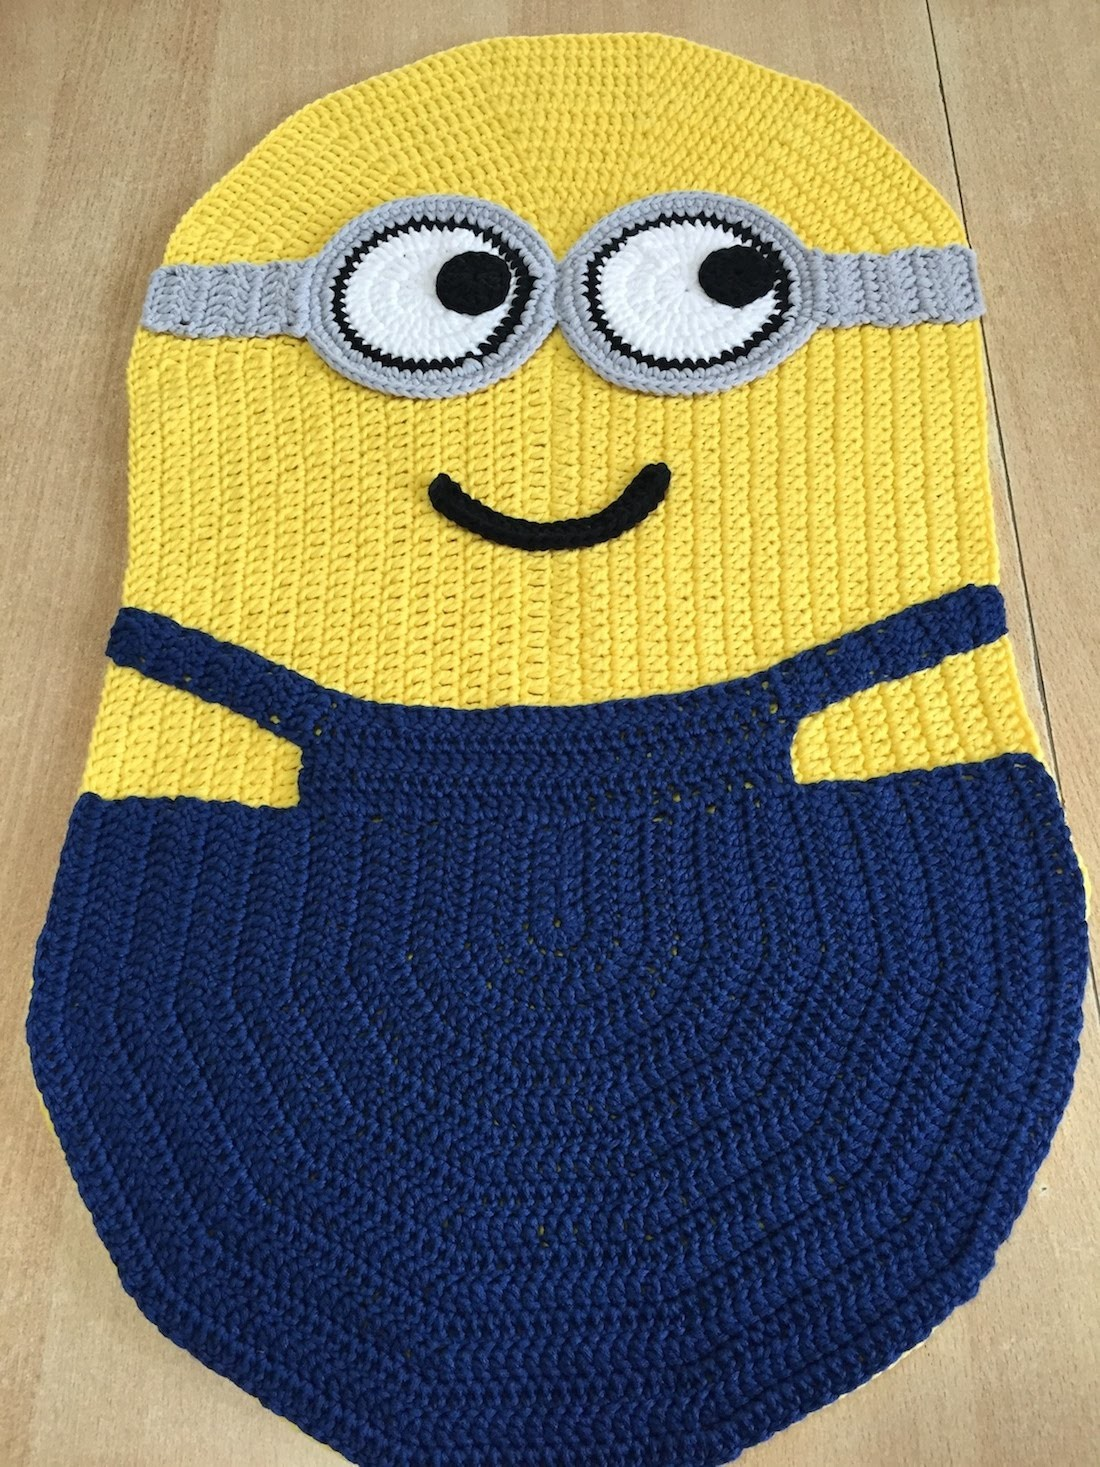 Tapis Peruvien Tuto Facile Tapis Coussin Minions Au Crochet My Crafts